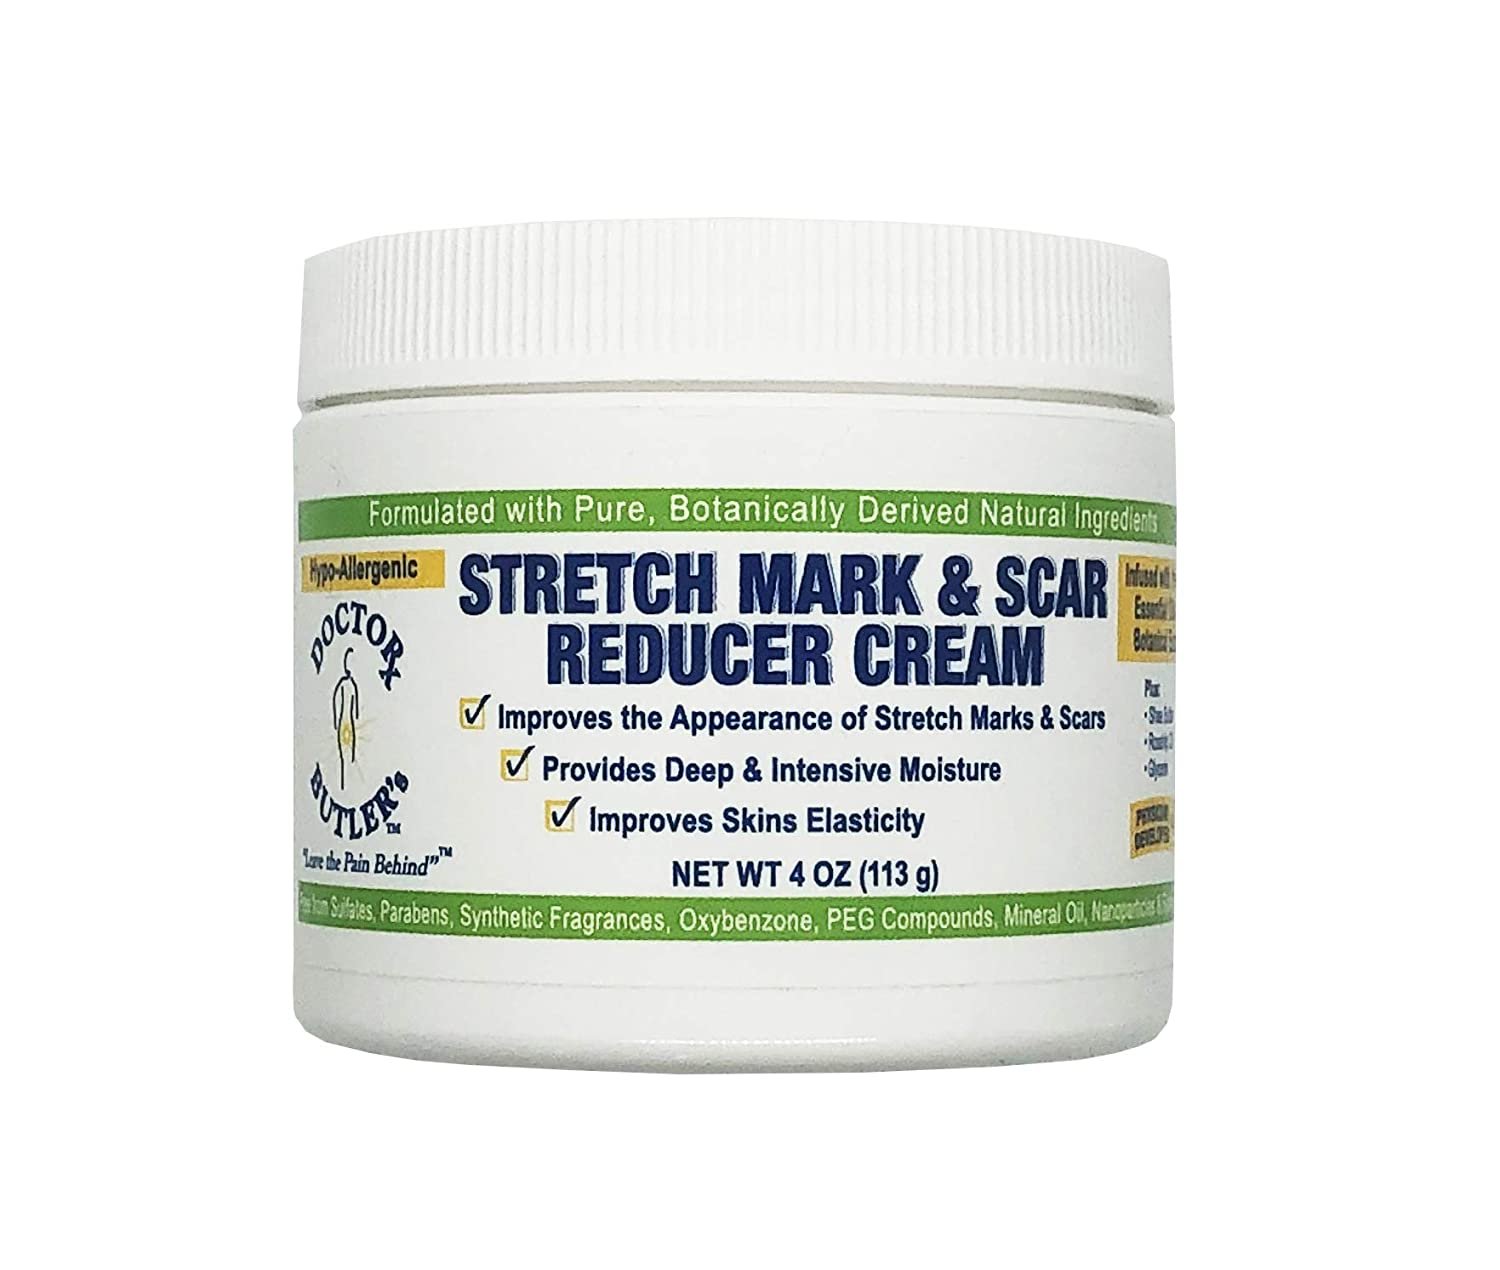 Doctor Butler Stretch Mark Cream - Postpartum & Pregnancy Stretch Mark Cream and Skin Moisturizer that Helps Reduce Stretch Marks with Shea Butter & Rosehip Oil, Paraben Sulfate Free (4 oz)